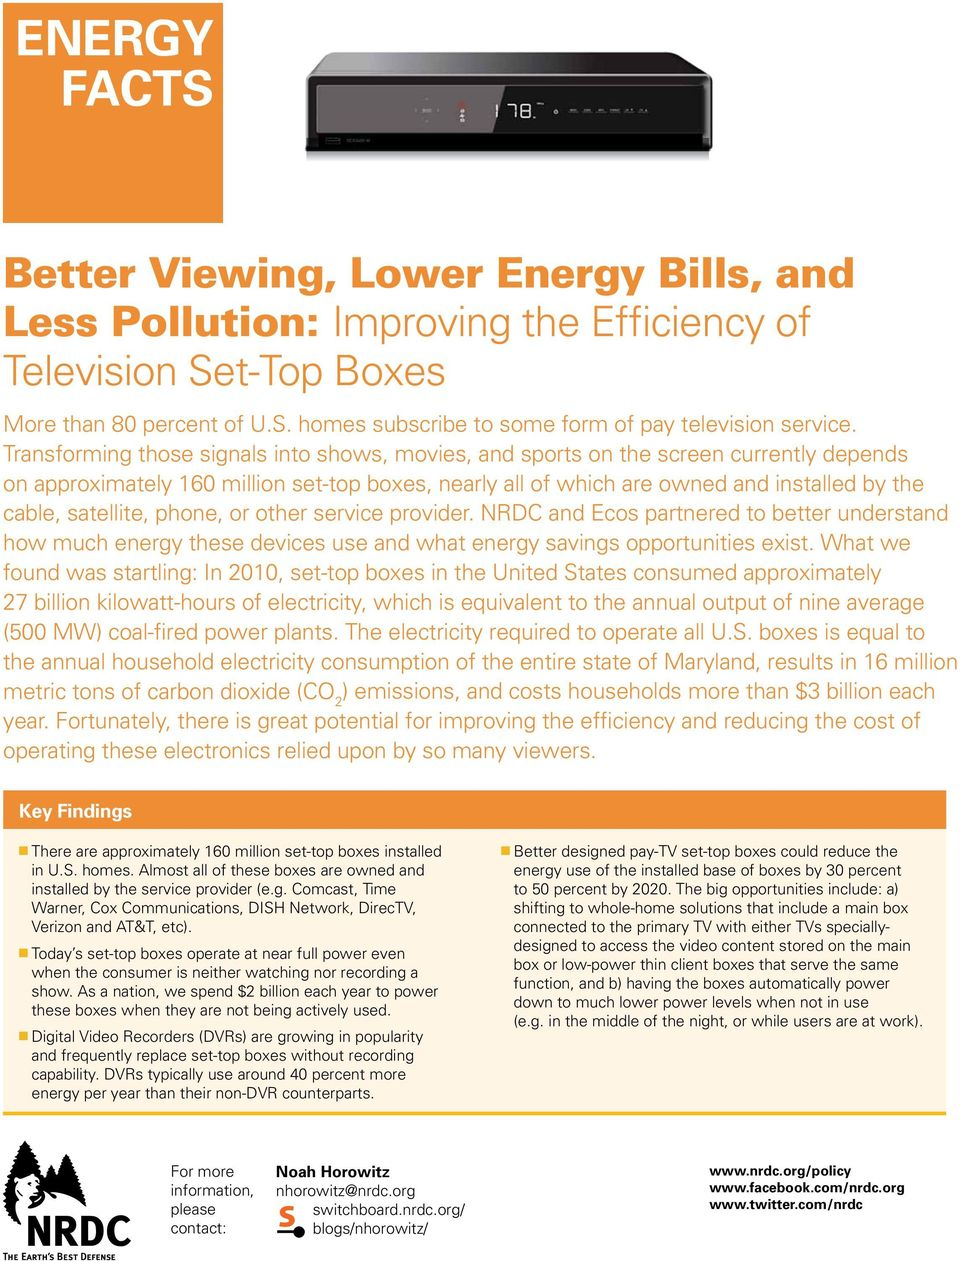 satellite, phone, or other service provider. NRDC and Ecos partnered to better understand how much energy these devices use and what energy savings opportunities exist.